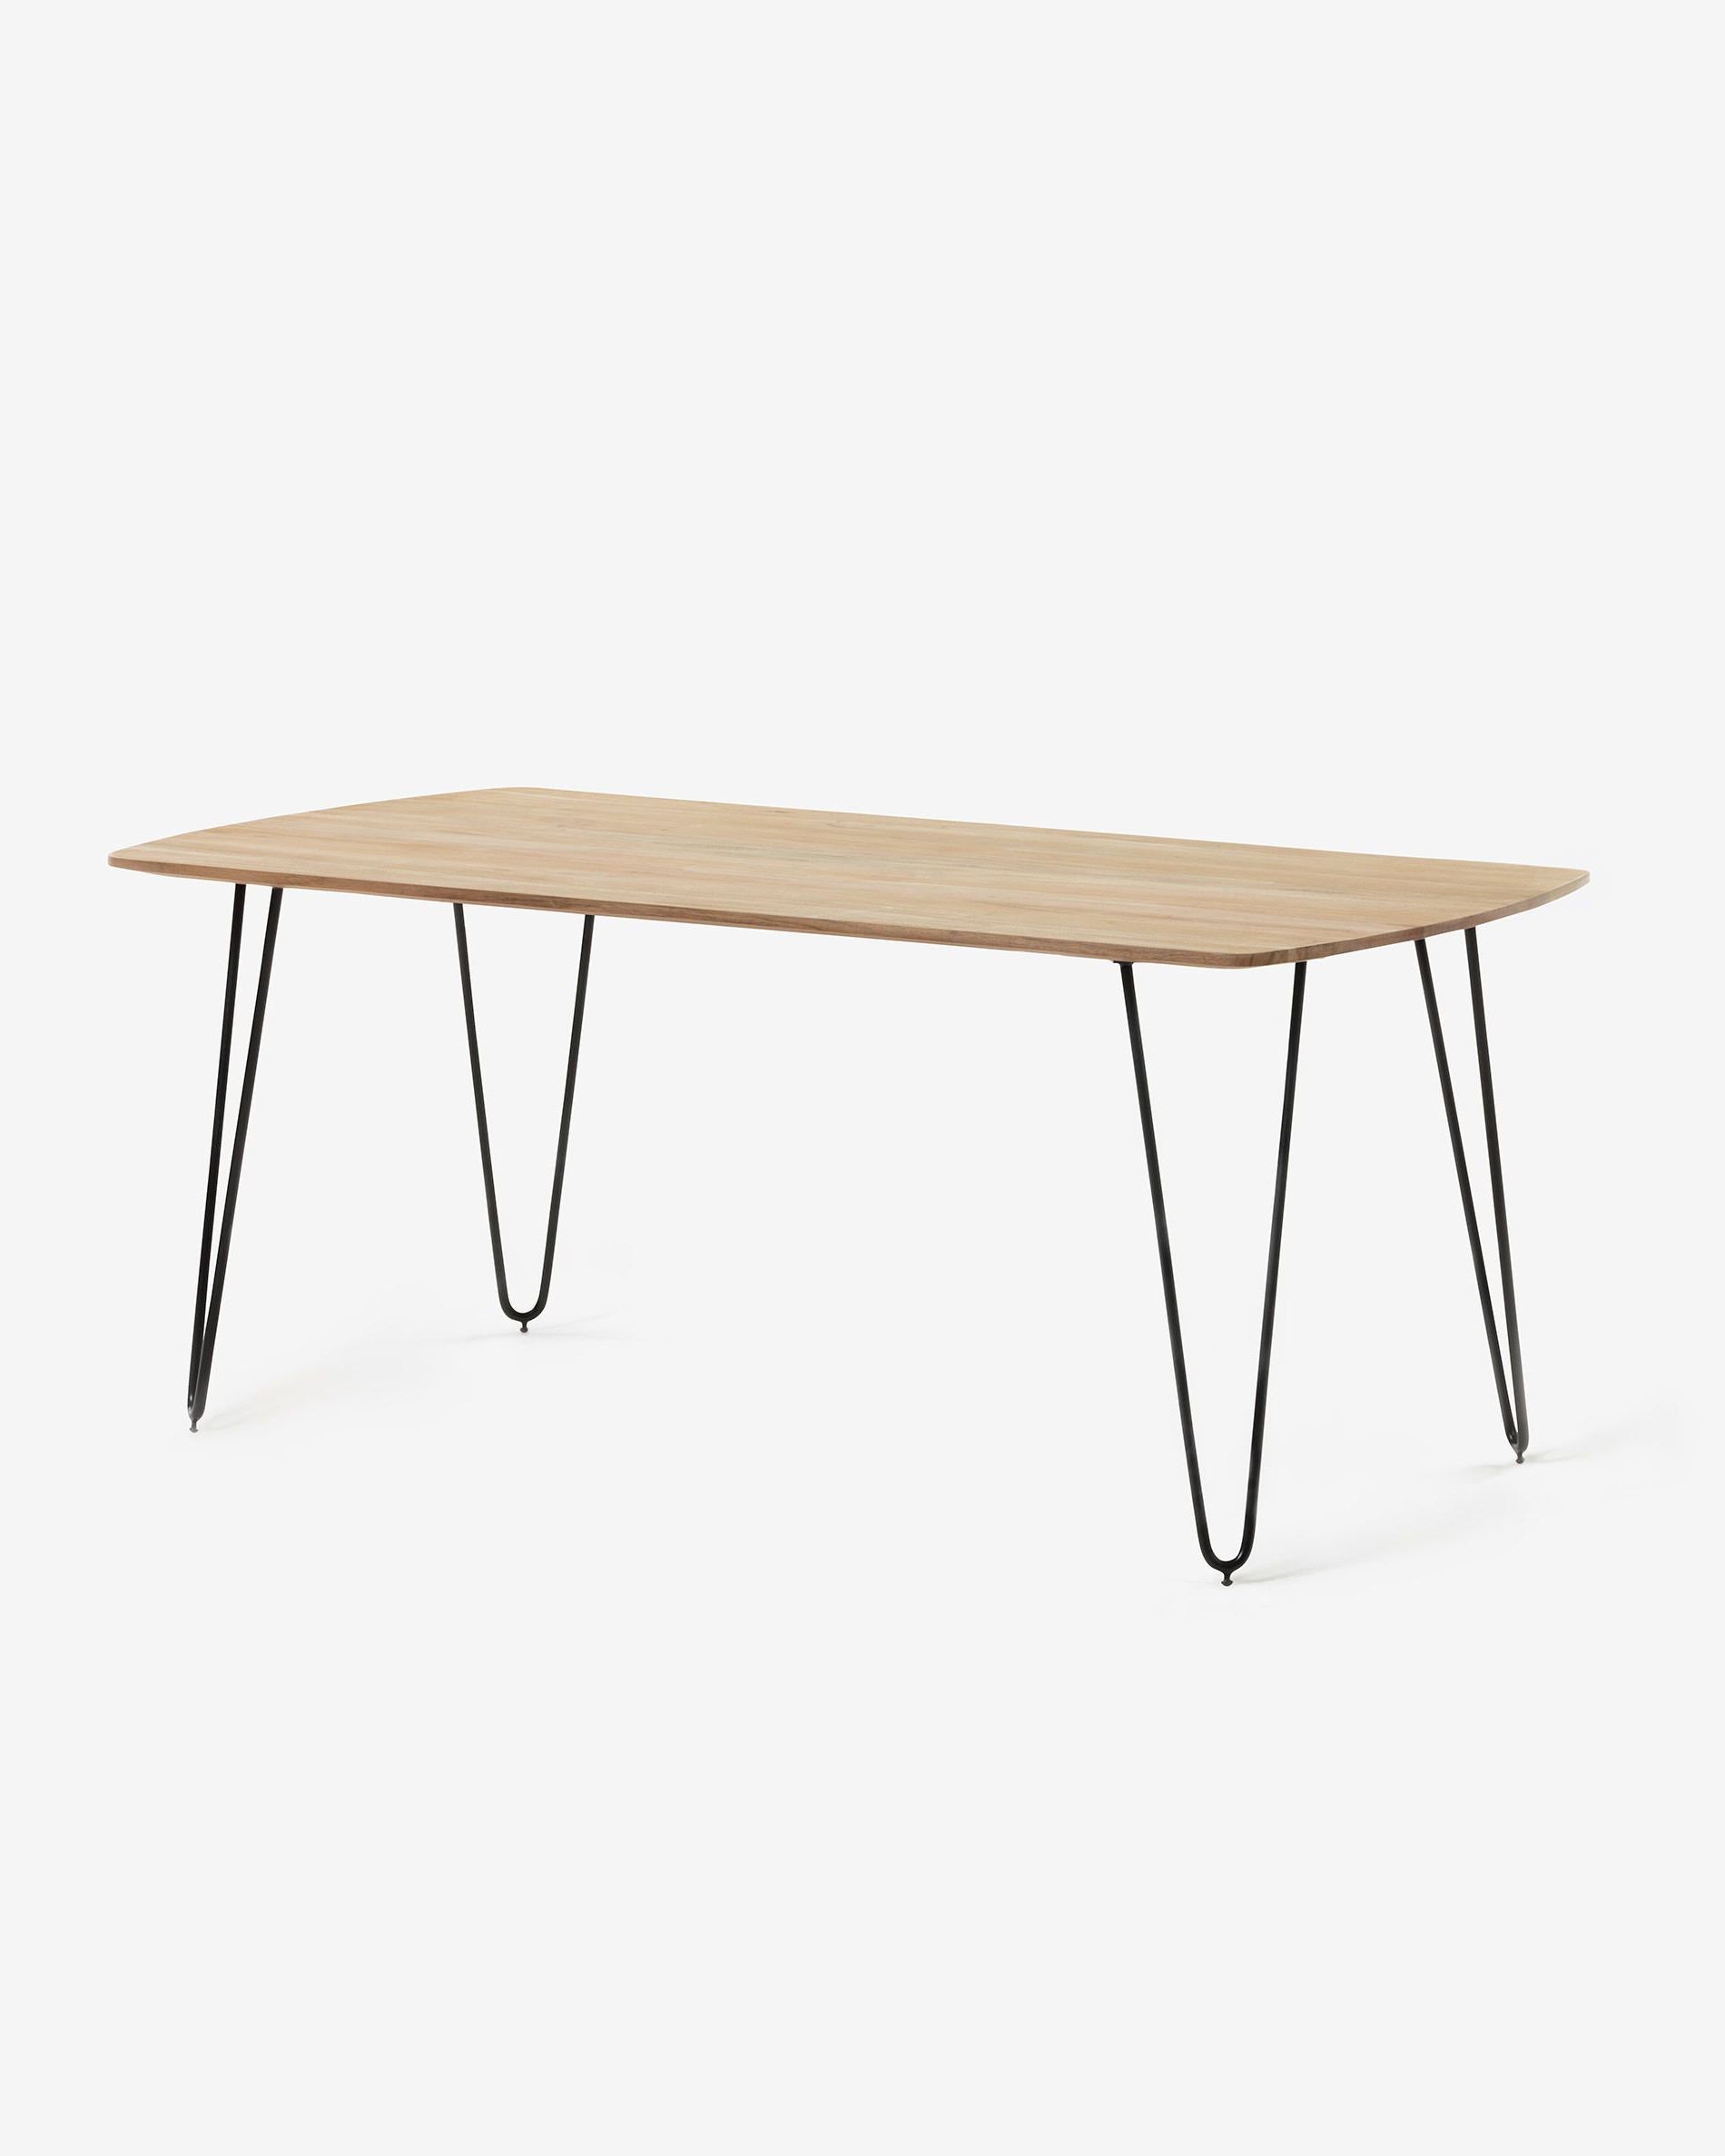 Kave Home Throughout Newest Acacia Dining Tables With Black X Legs (View 22 of 25)